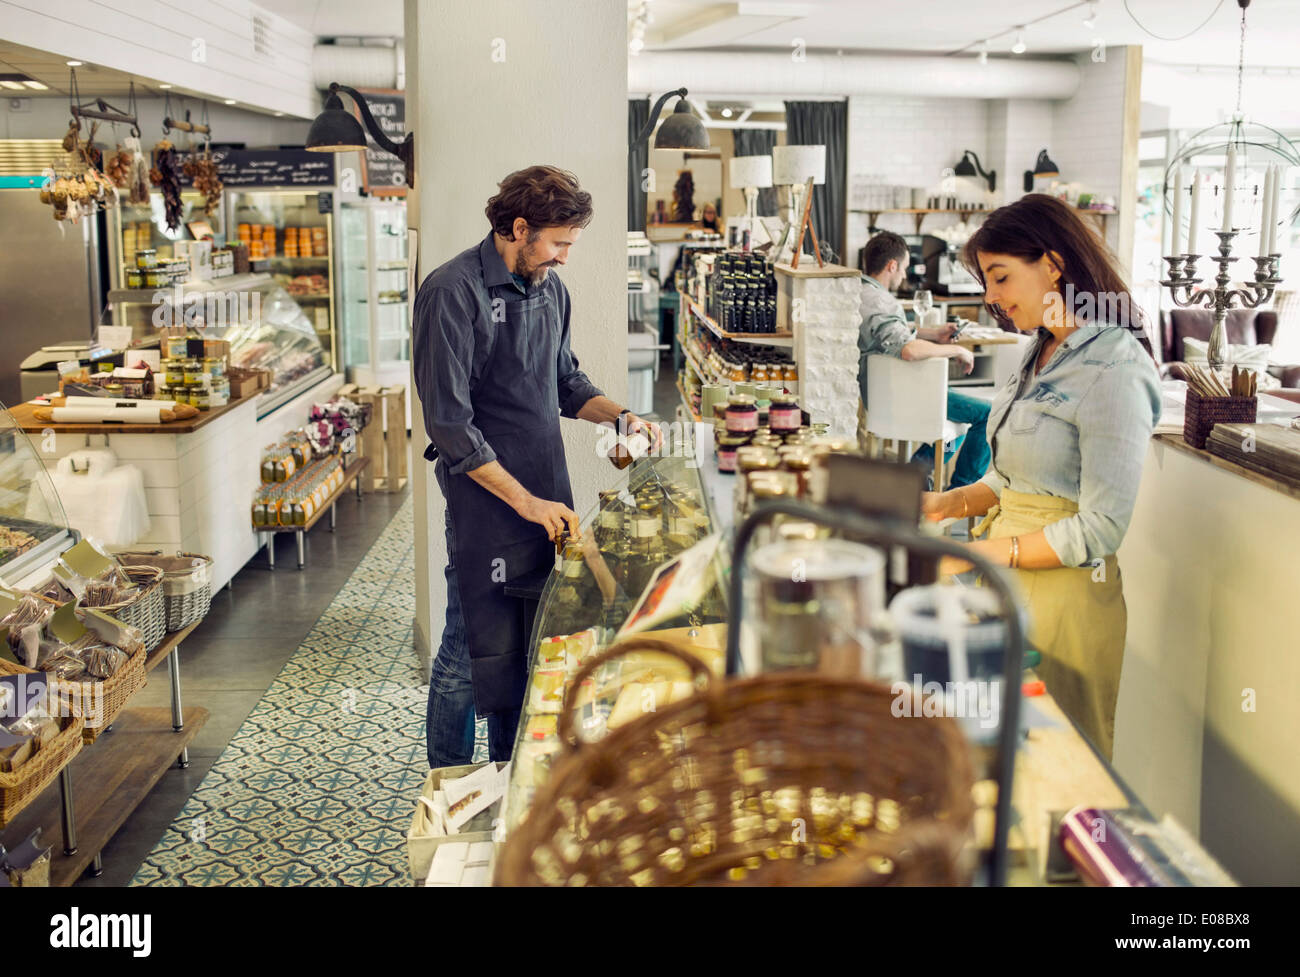 Salespeople working in supermarket - Stock Image